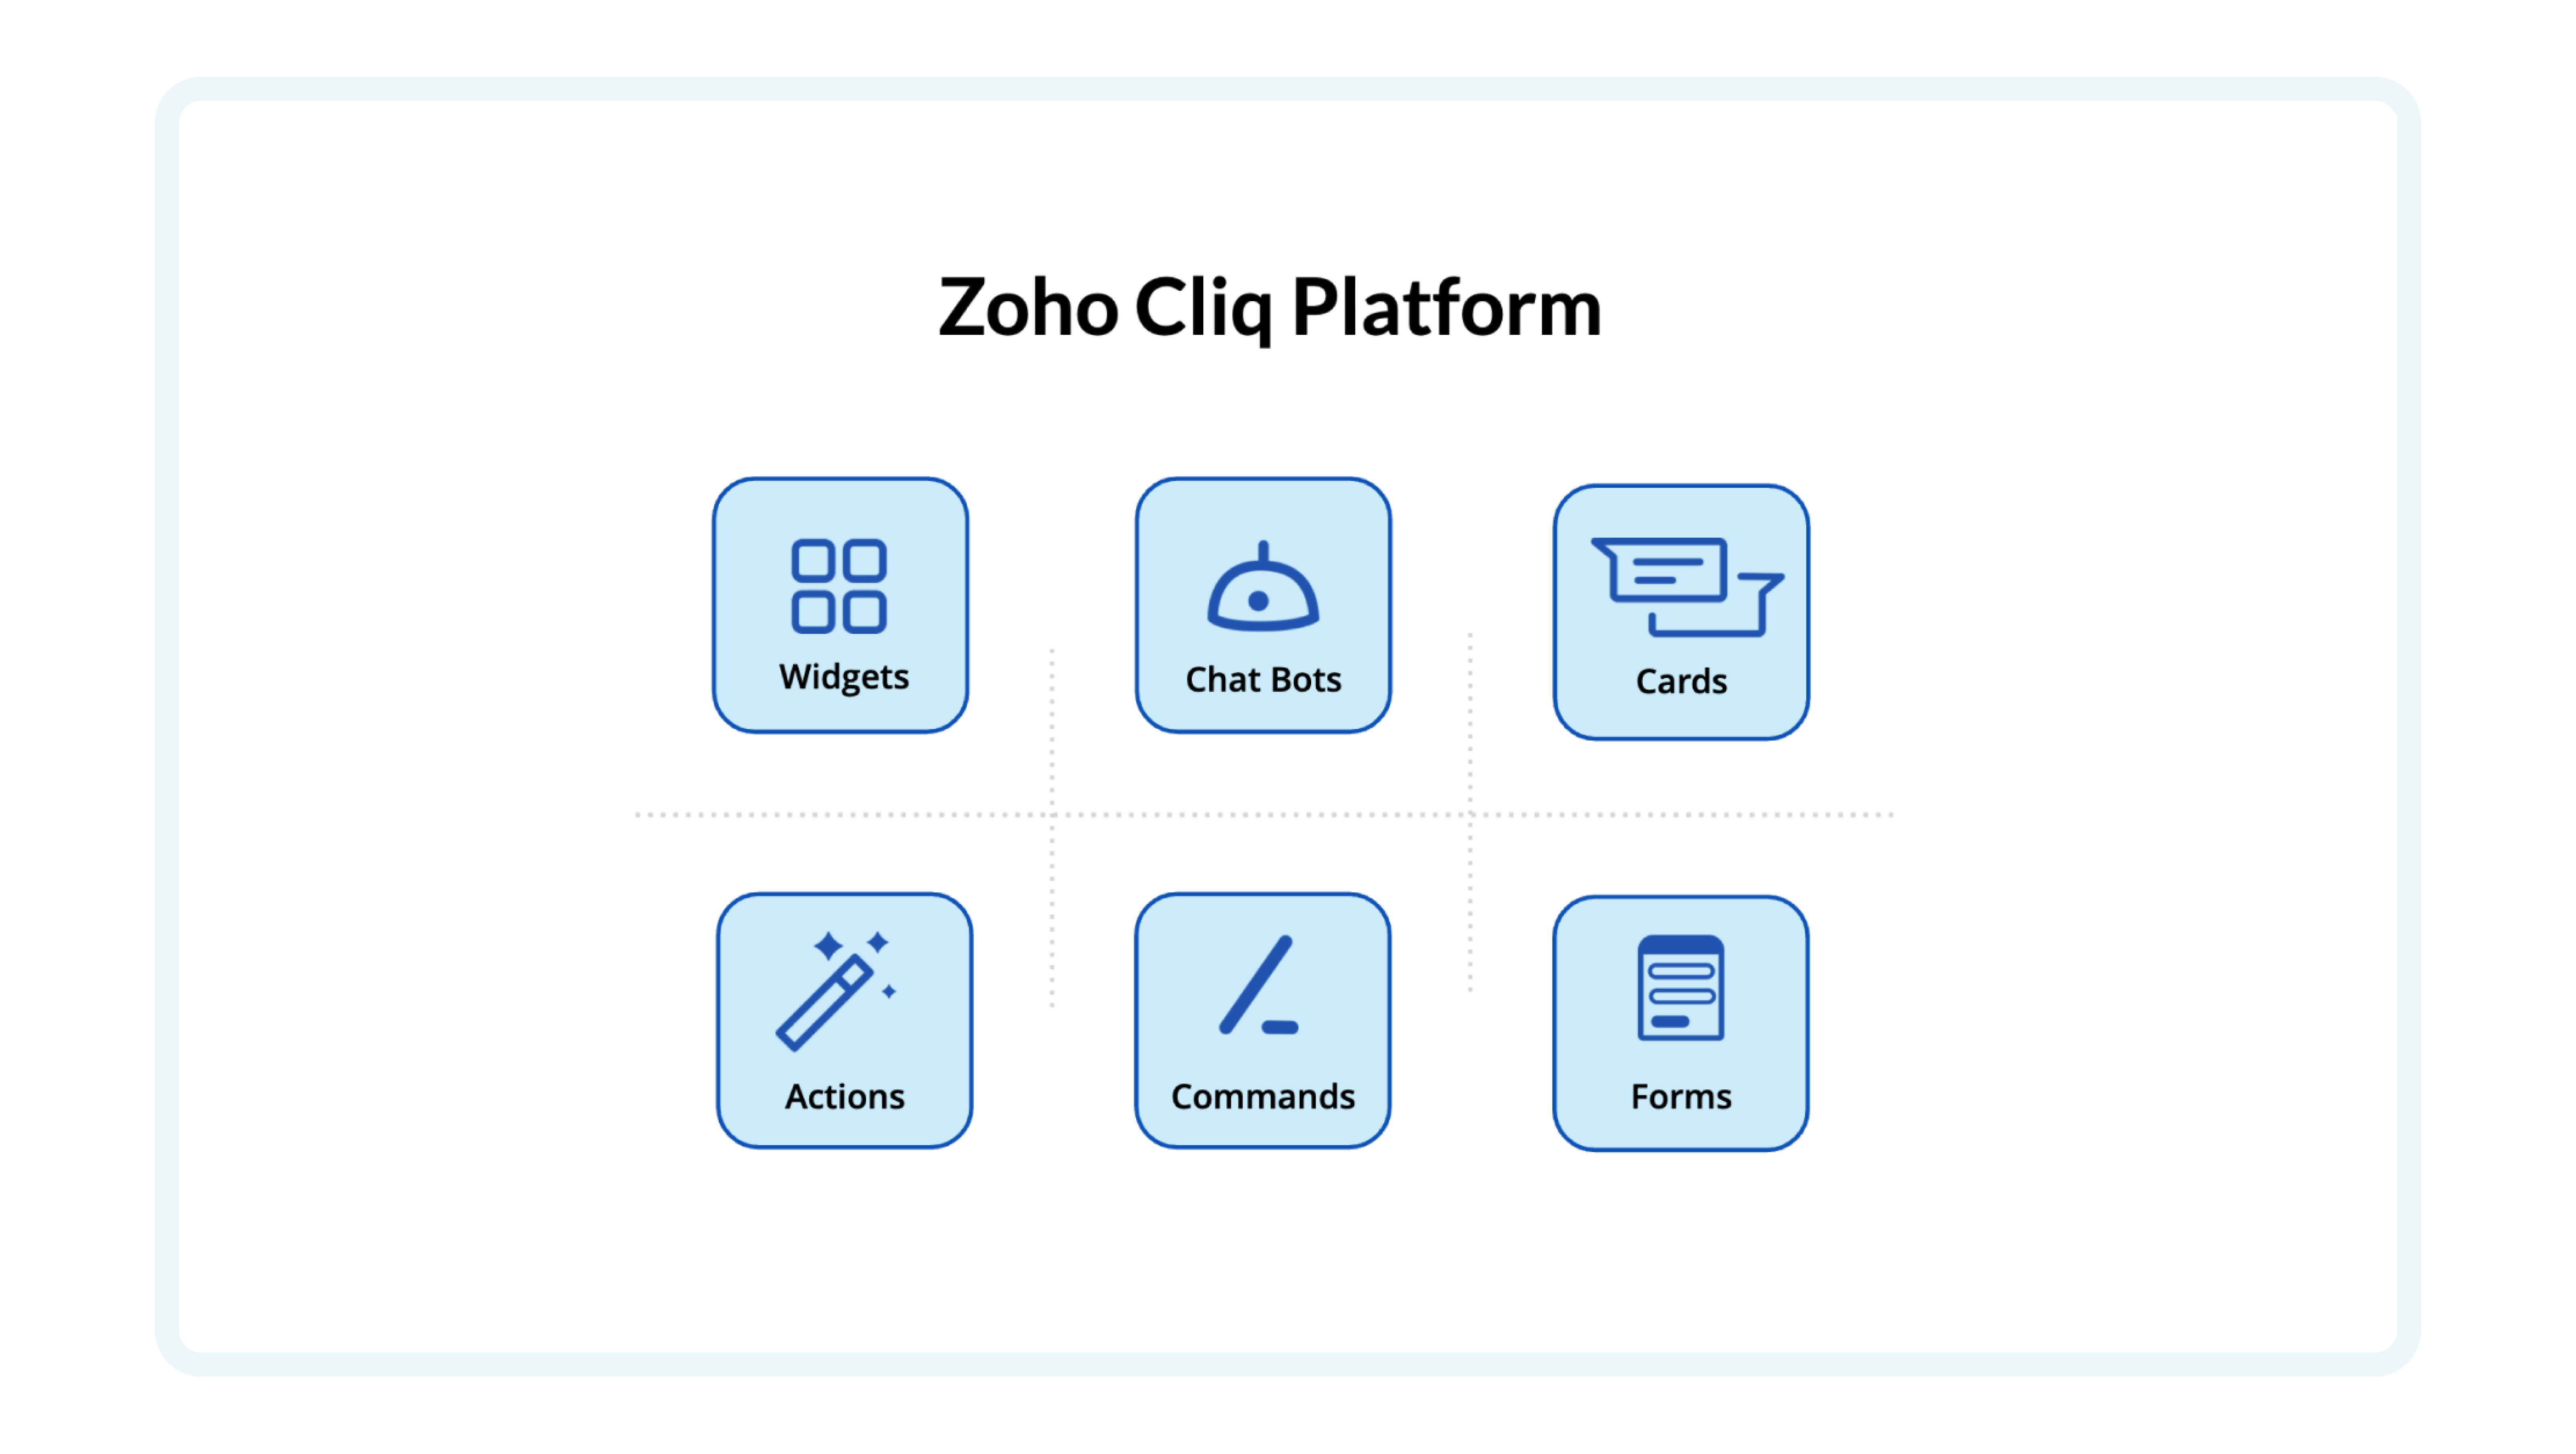 You can use the Zoho Cliq Platformto build internal tools like Bots, Commands, Message actions, and others to automate your routine activities and bring data from other apps into Cliq.